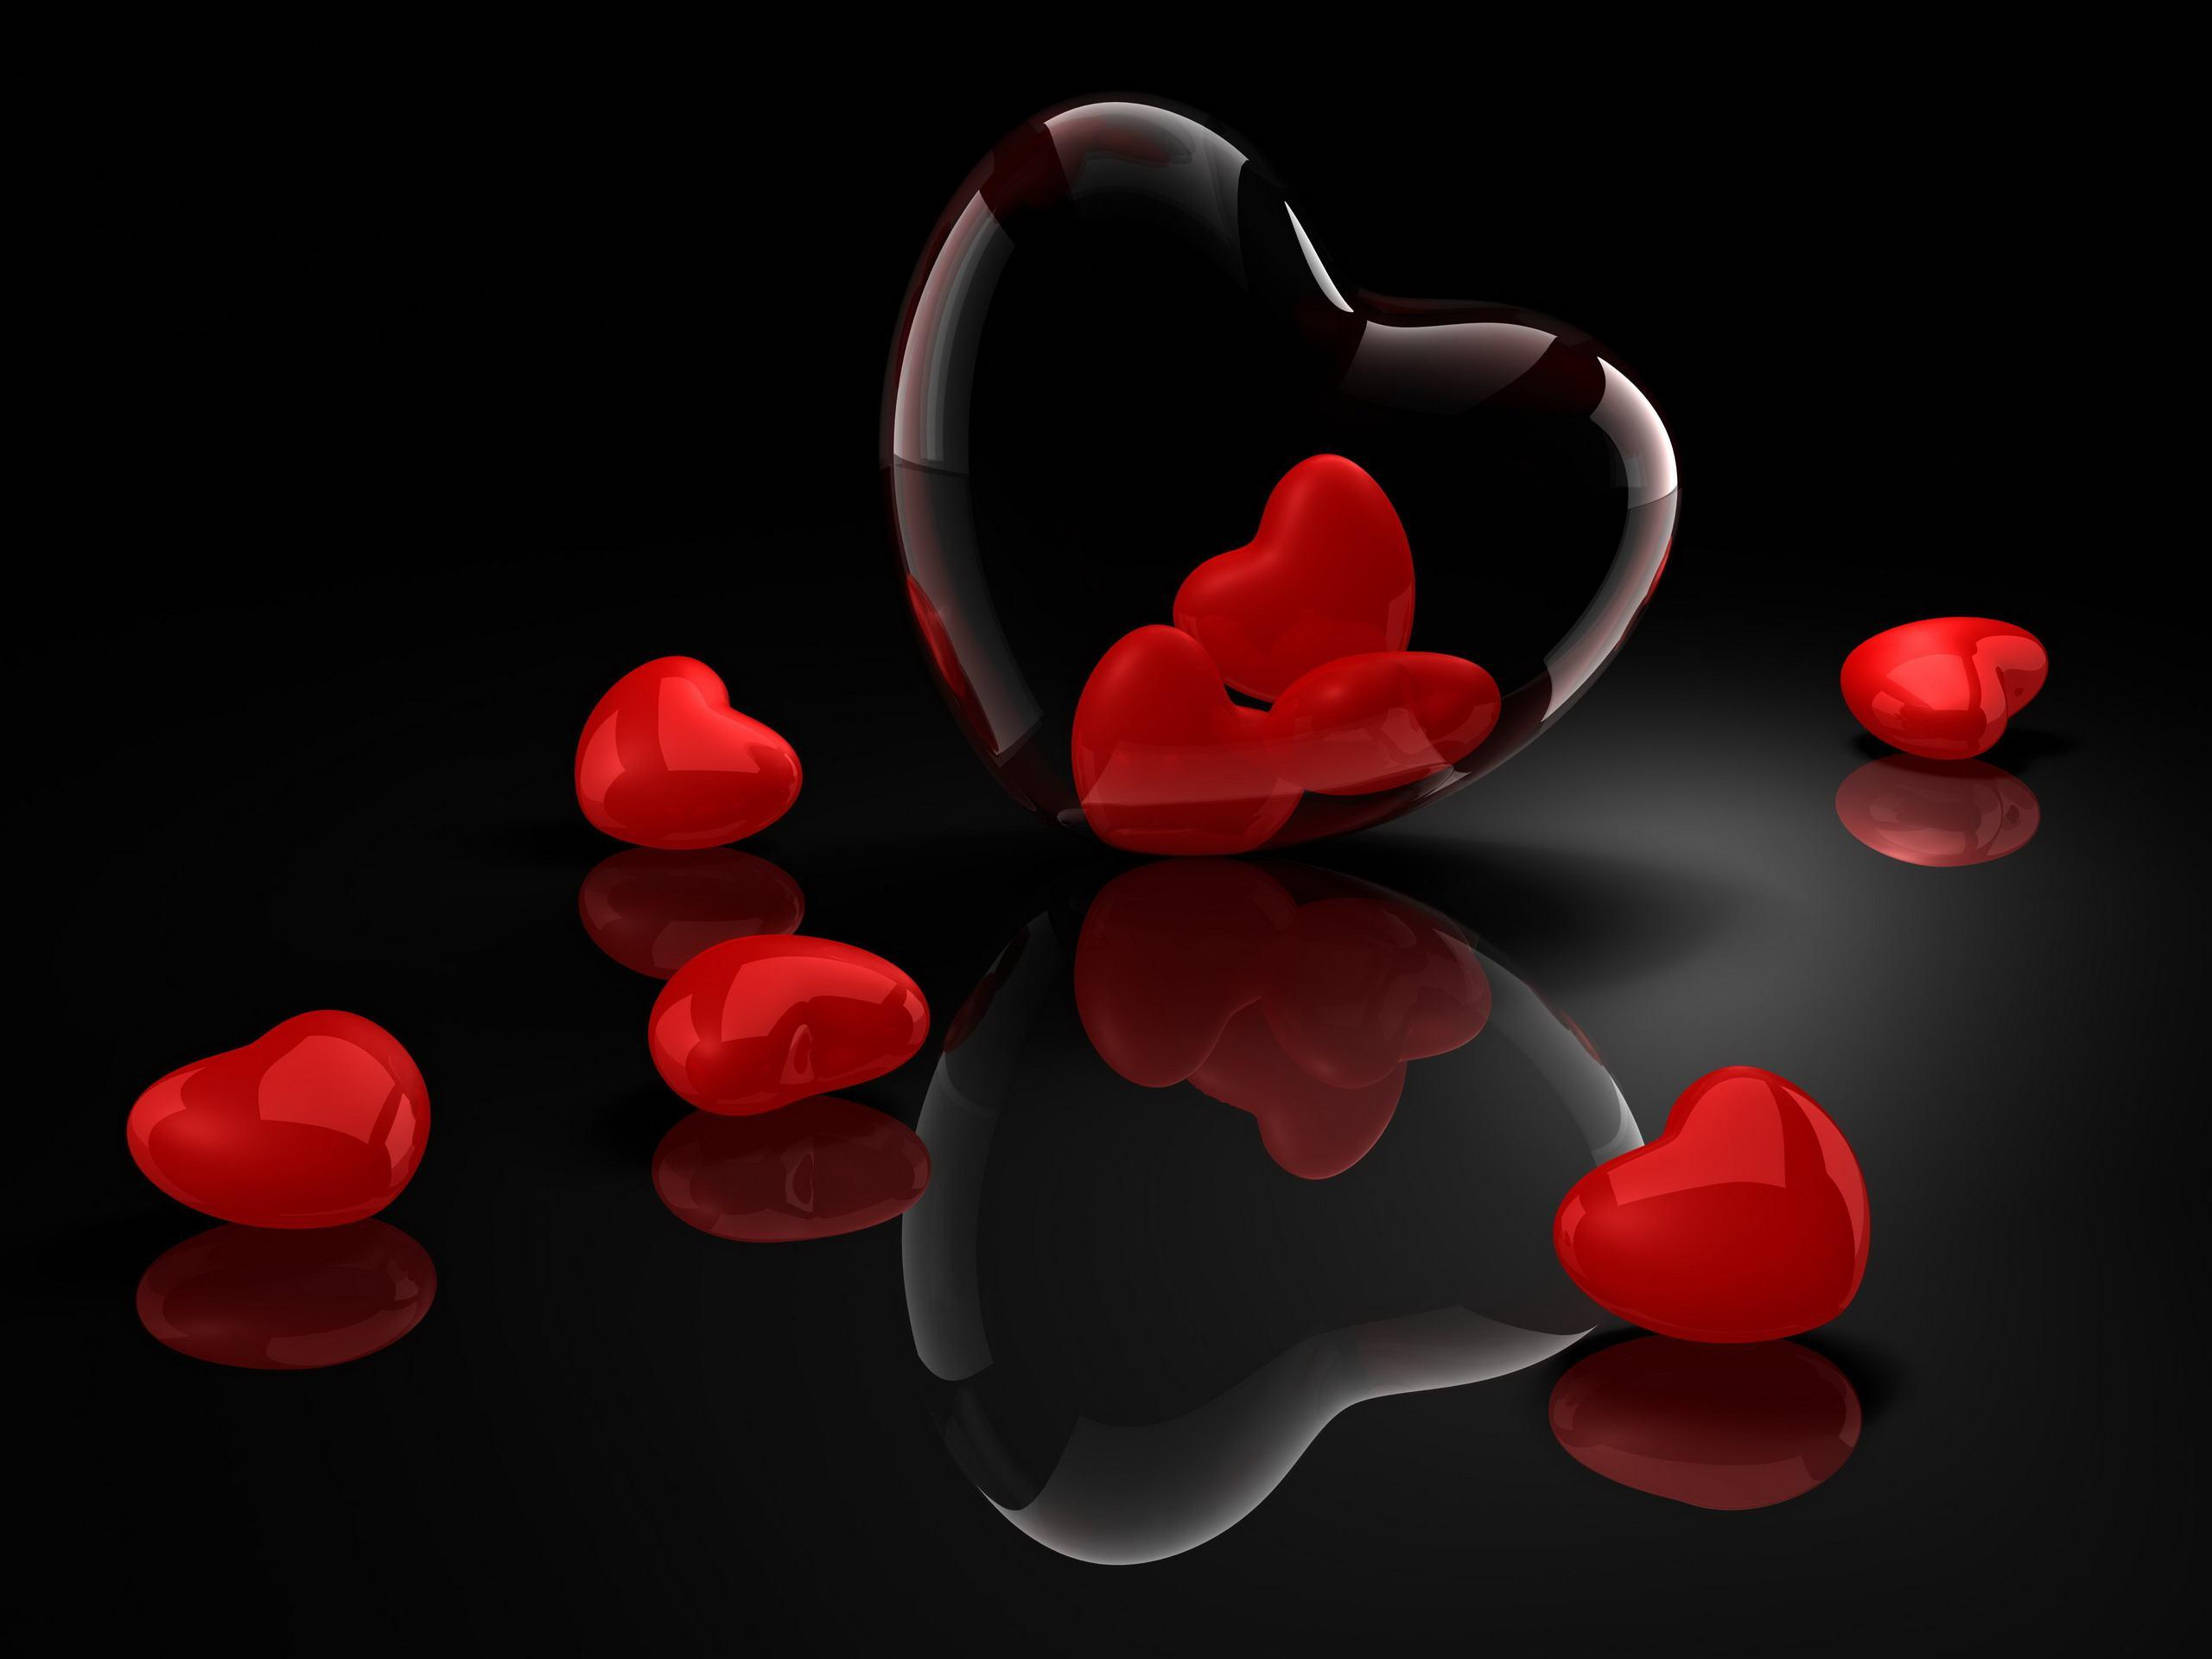 Love Wallpaper 3d Free : Heart Black Backgrounds - Wallpaper cave